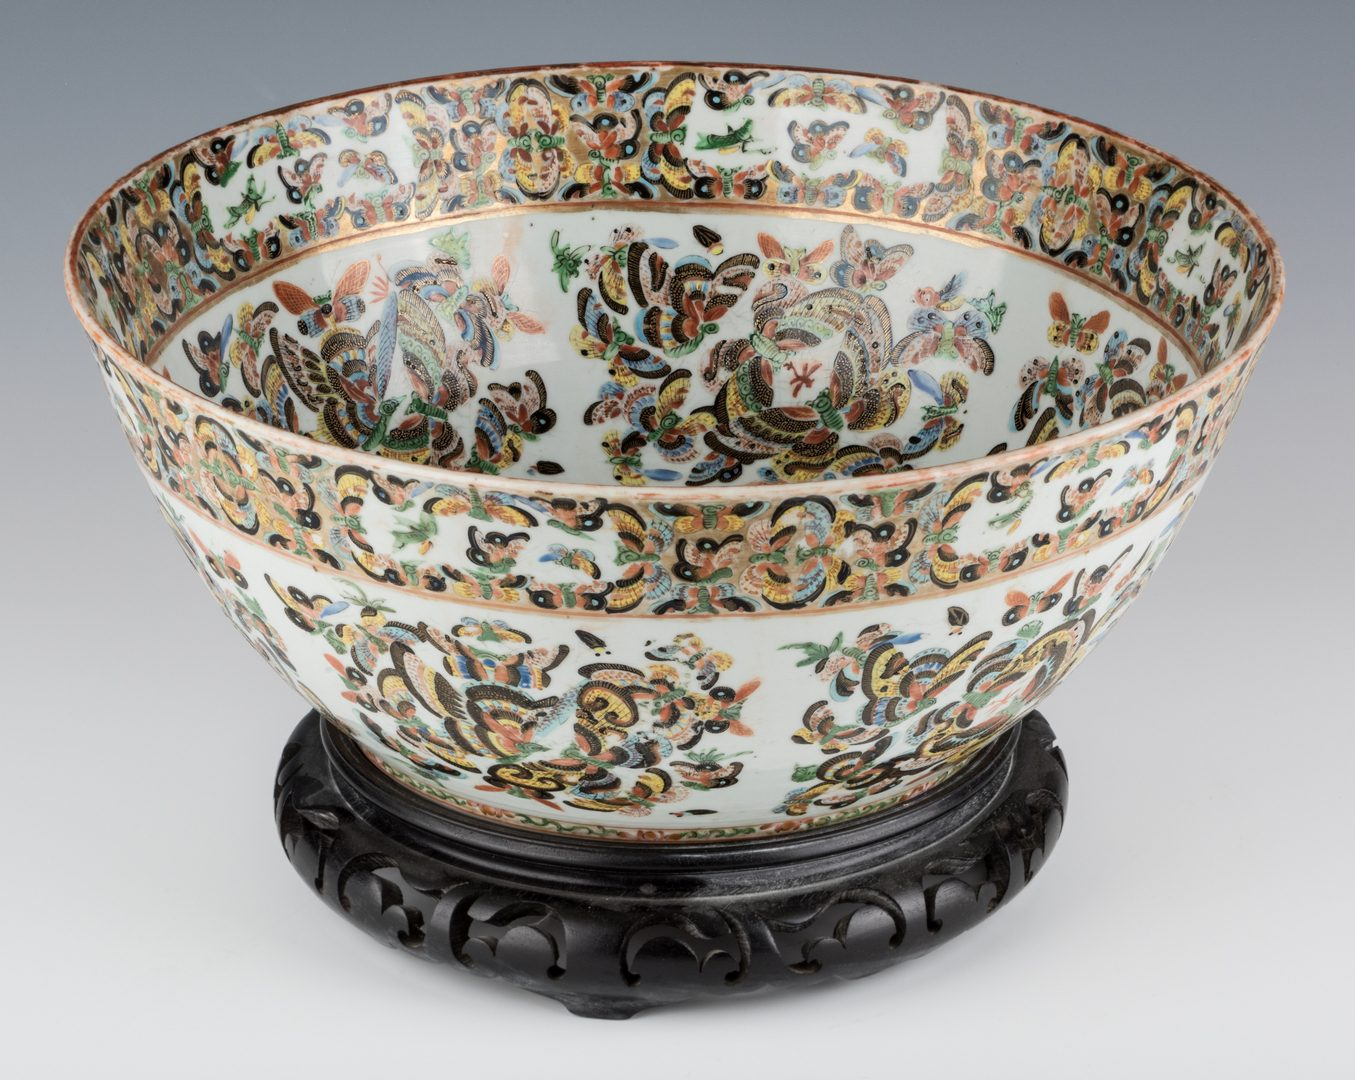 Lot 23: Chinese Export 1000 Butterflies Punch Bowl